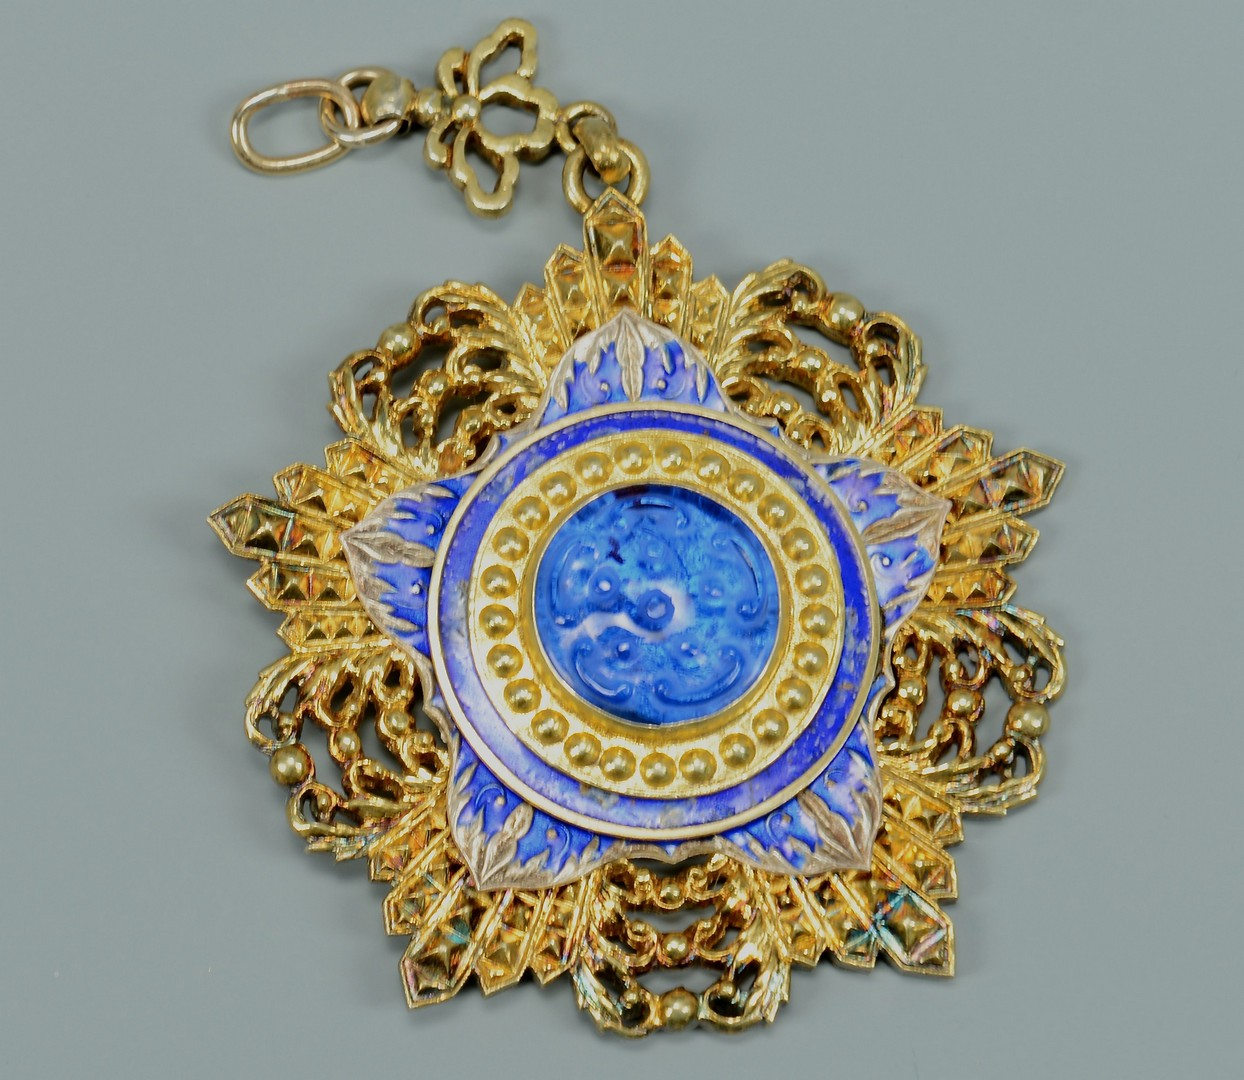 Lot 3383246 5 Chinese Jewelry Items